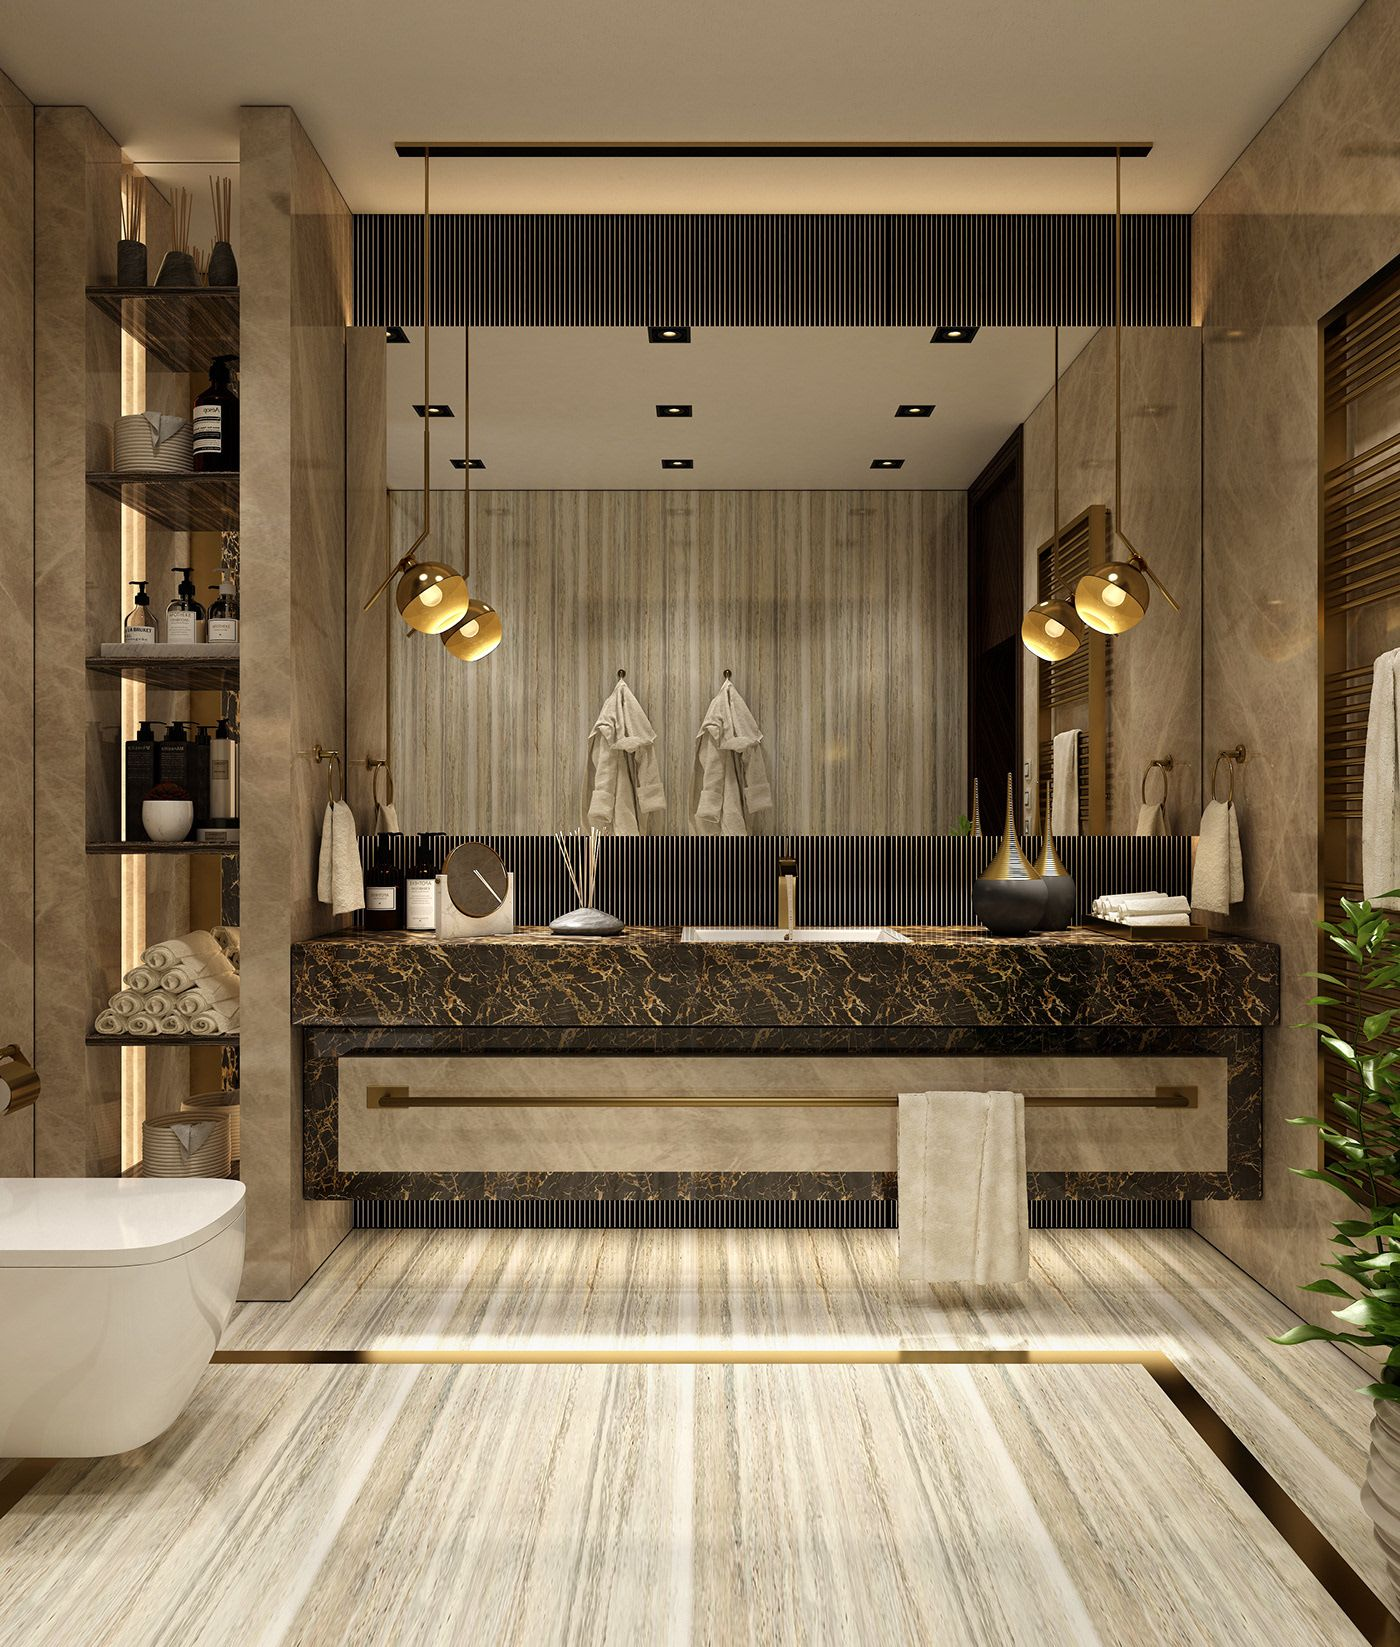 Luxurious bathroom also remodel ideas you must see for your lovely home dream rh pinterest